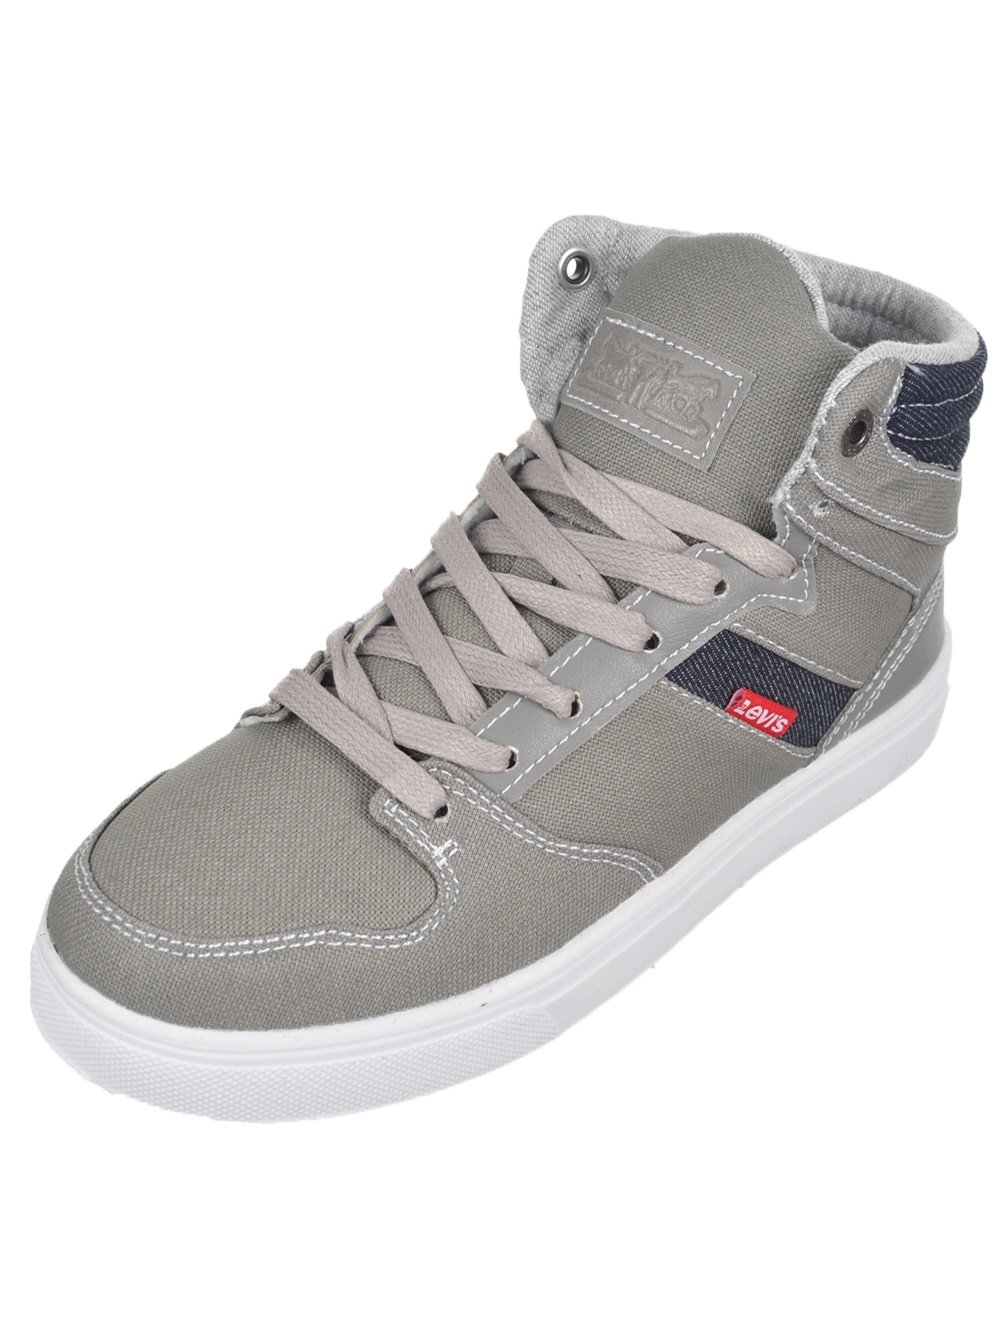 "Levi's Boys' ""Brentwood"" Hi-Top Sneakers (Youth Sizes 13 - 3) - gray, 2.5 youth"